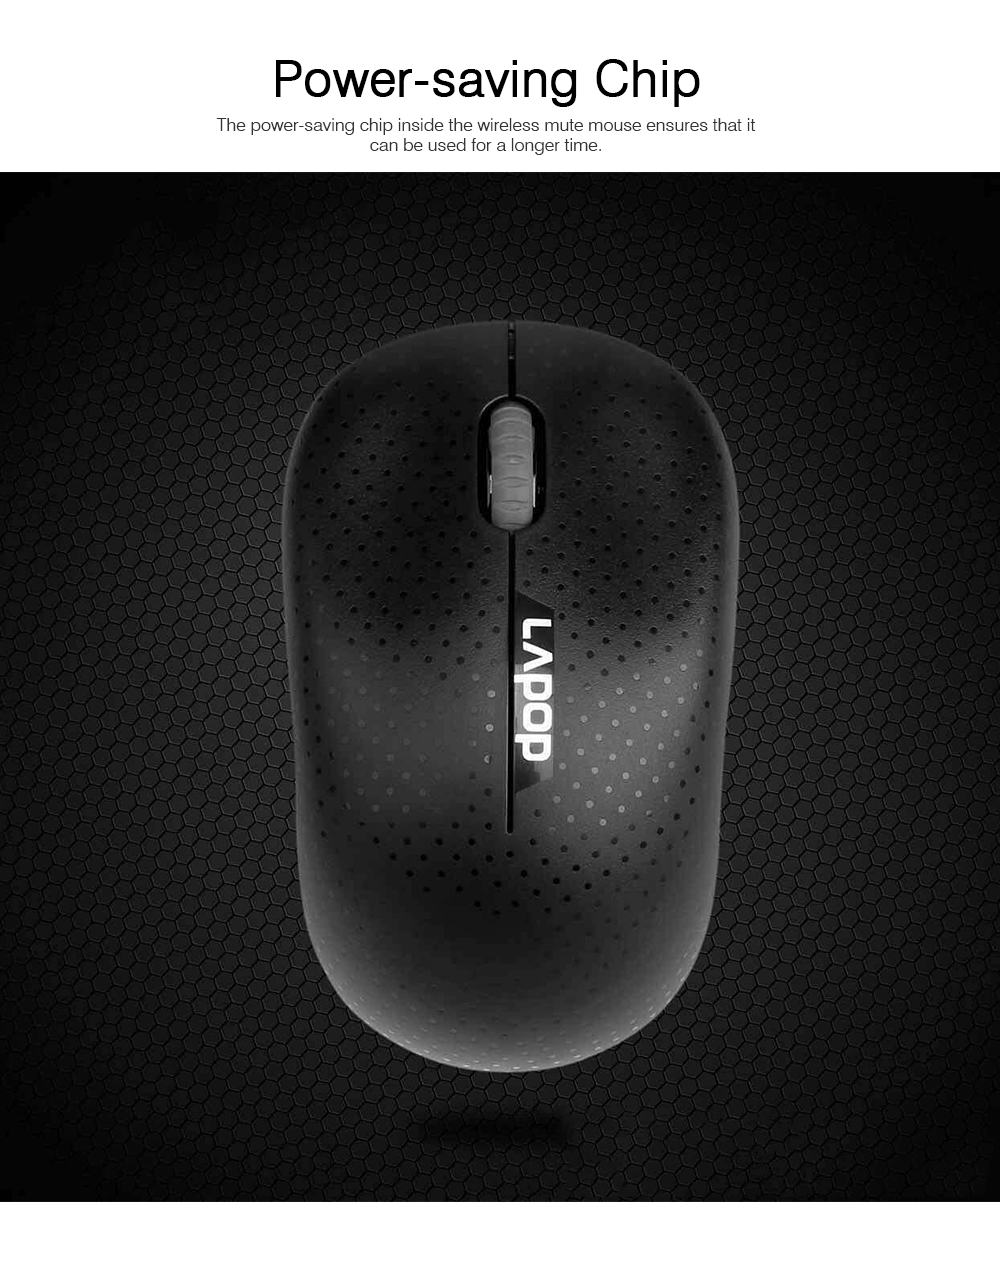 Wireless Mute Mouse for Office Use, Fashionable Wireless Mouse for Laptop, Wireless Game Mouse Black 5